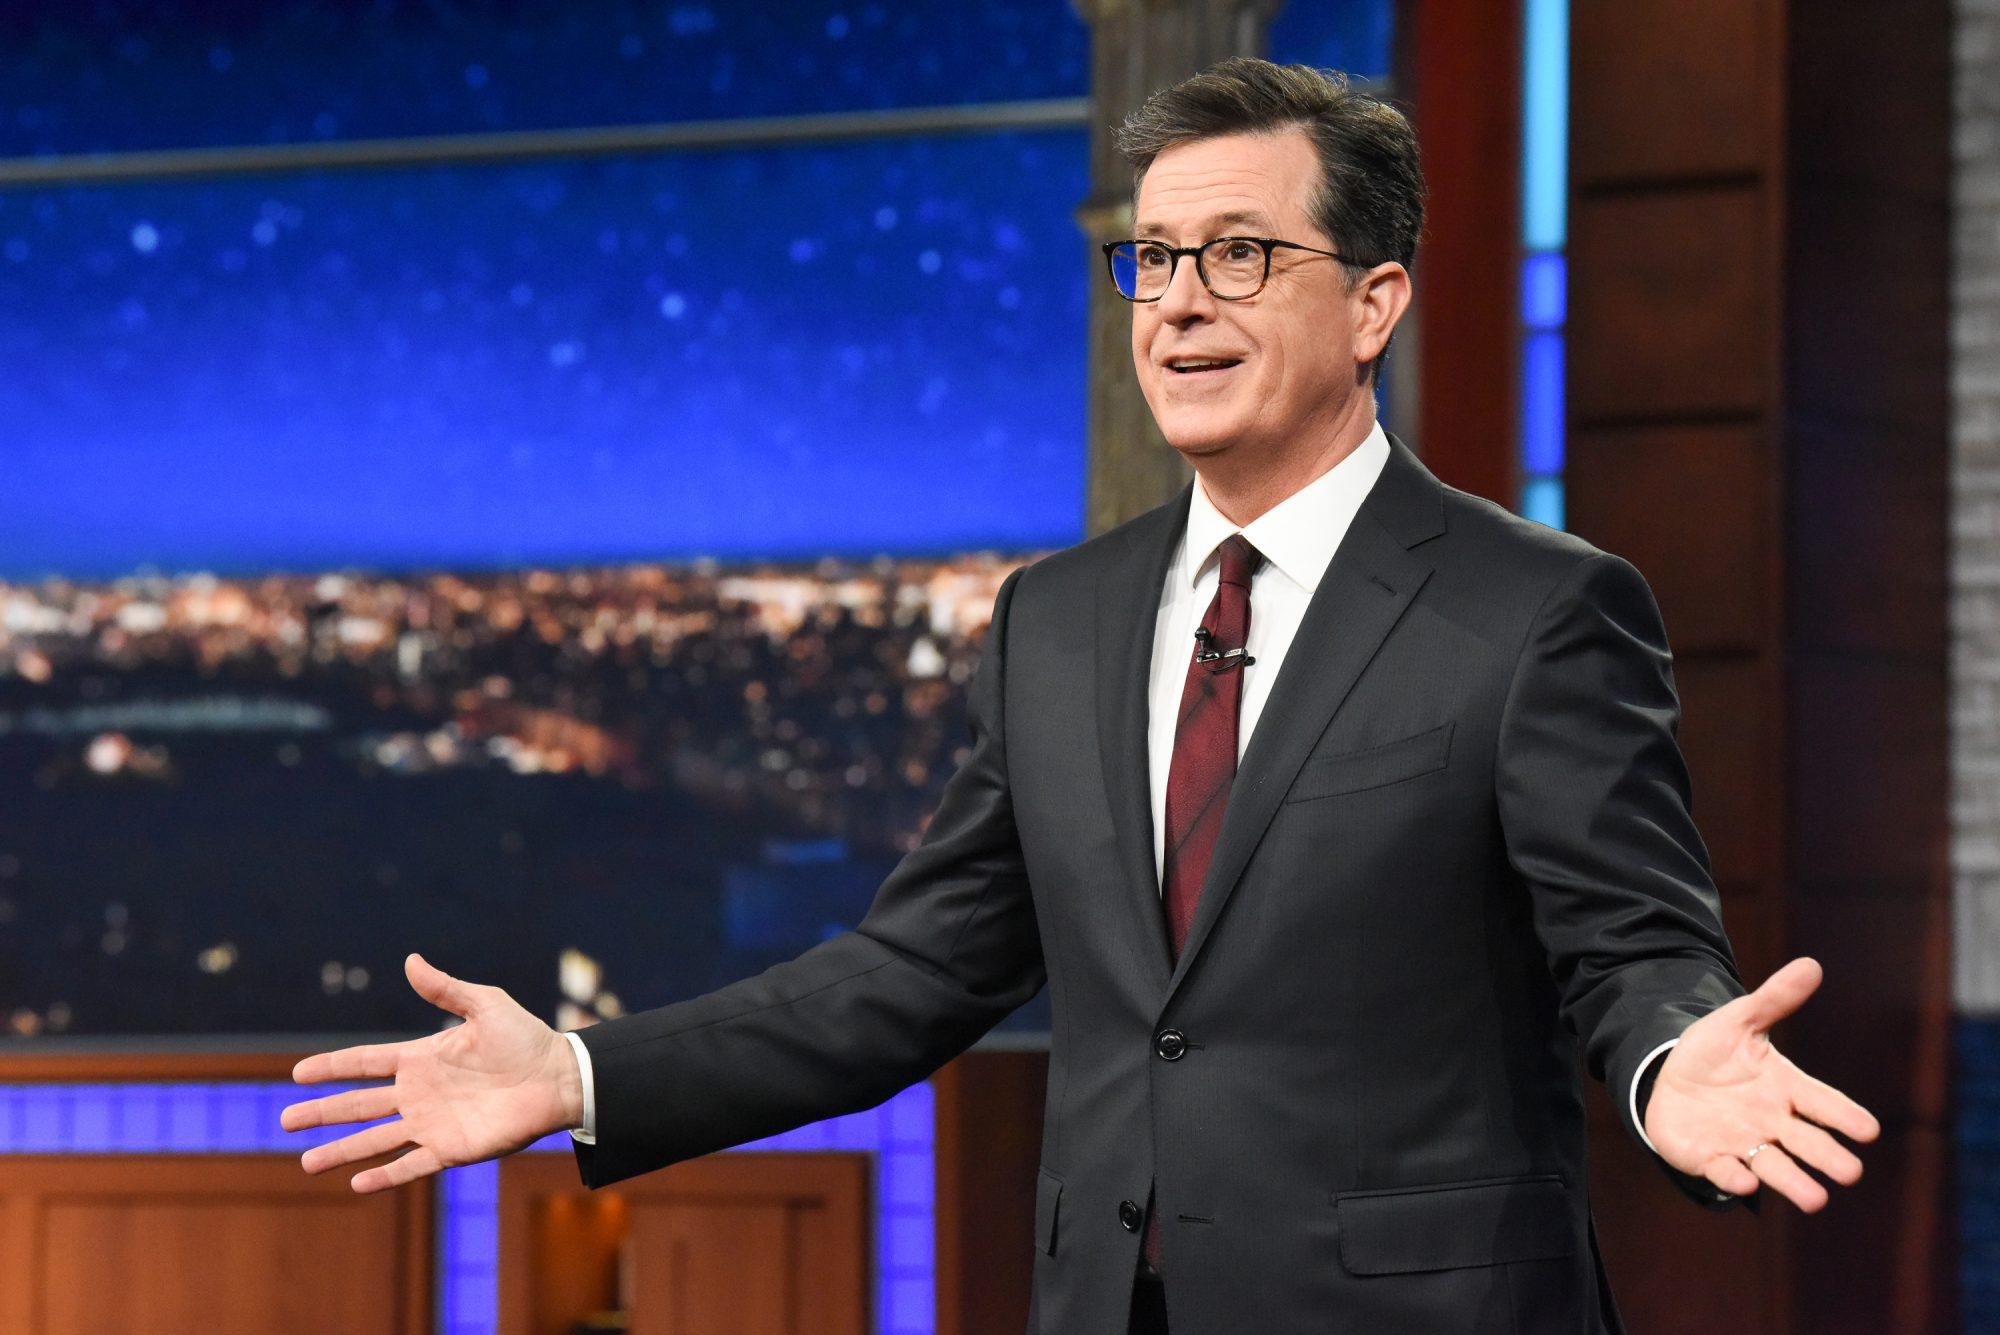 Stephen Colbert Late Show